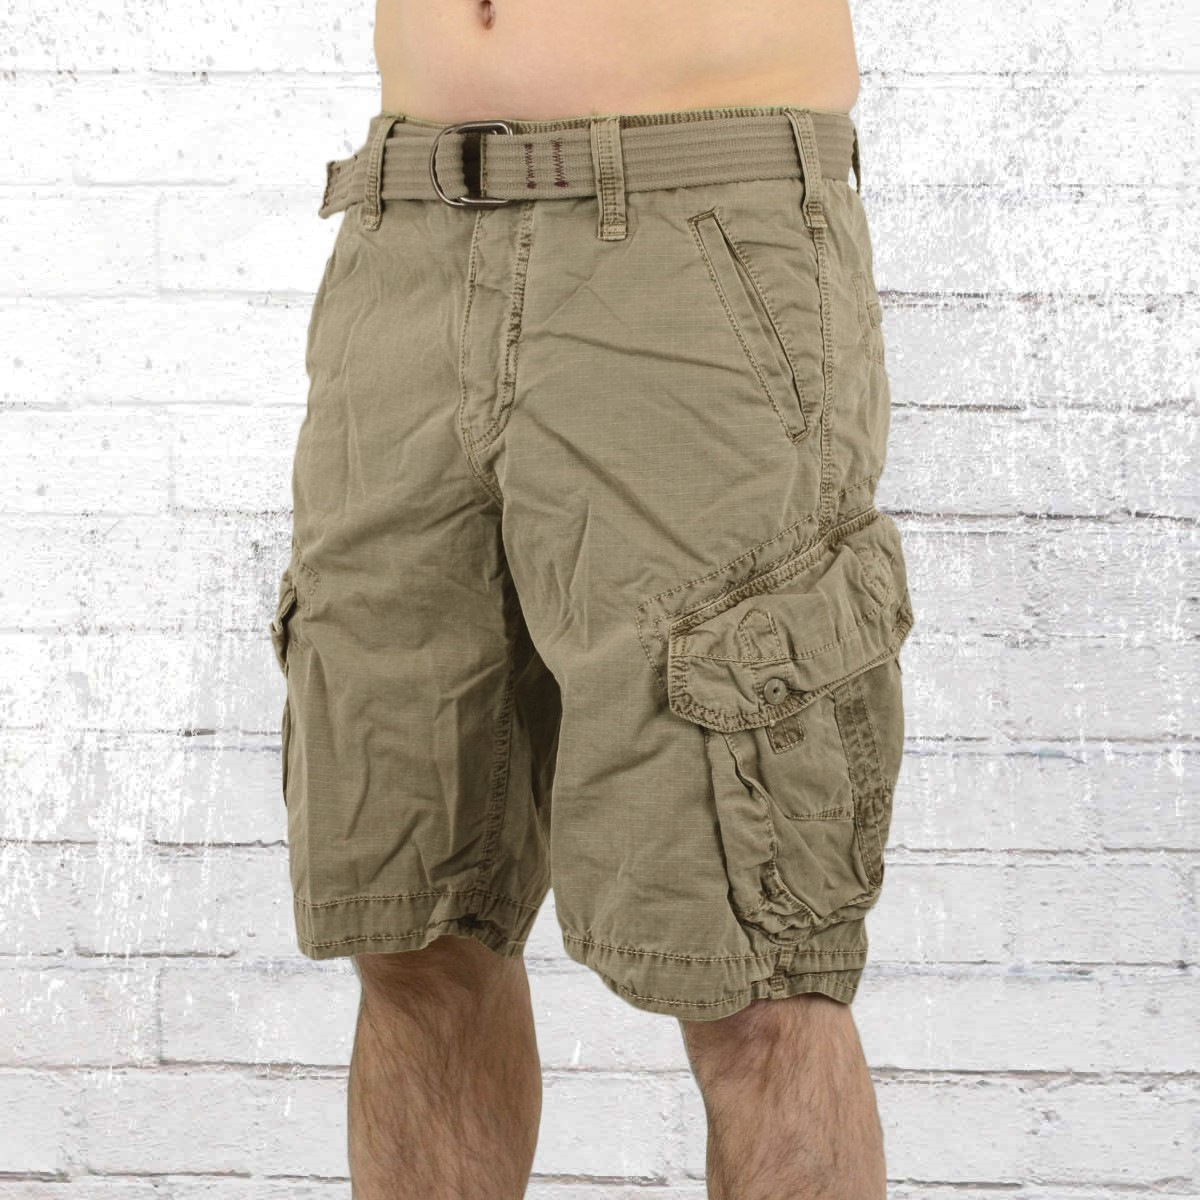 jetzt bestellen jet lag cargo shorts herren take off 3 khaki krasse. Black Bedroom Furniture Sets. Home Design Ideas